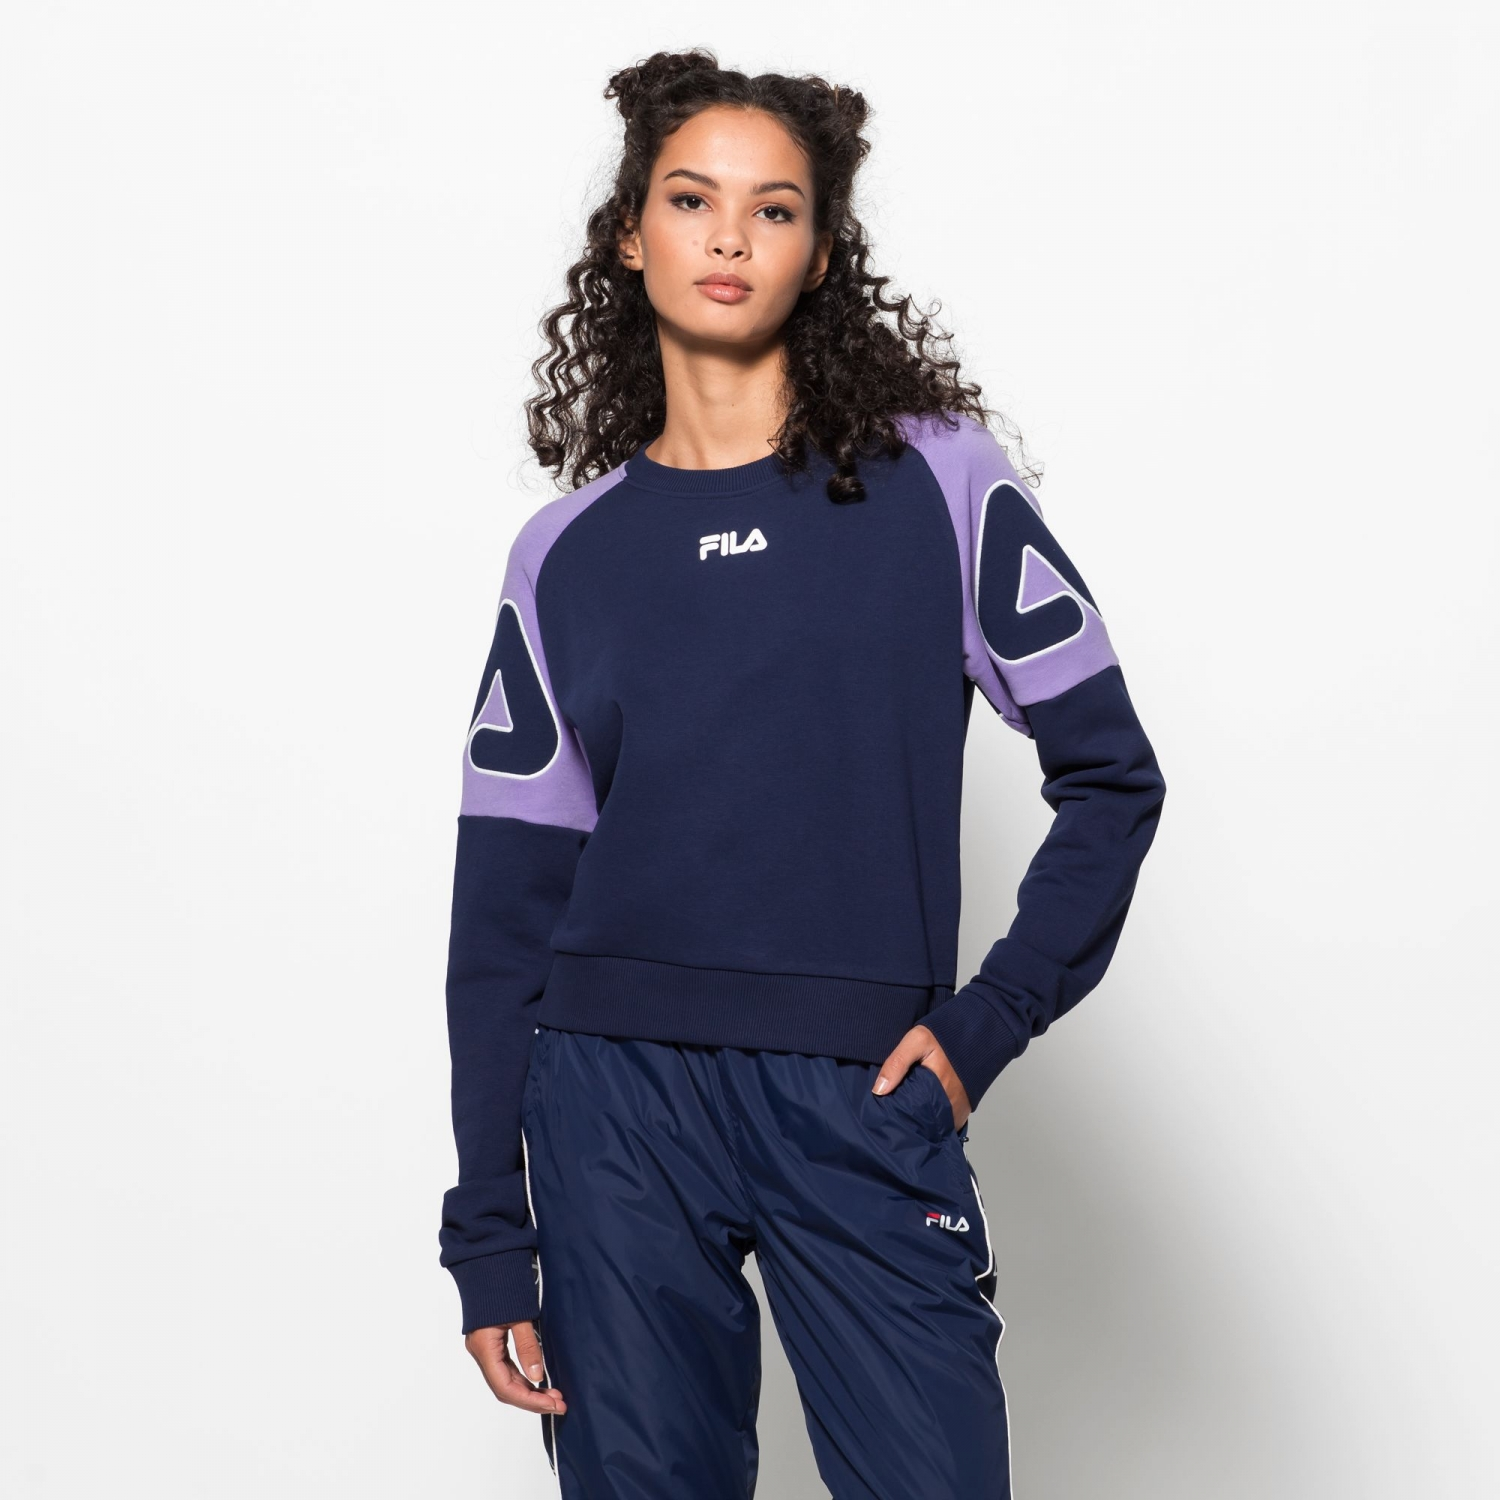 Fila Veronica Crew Sweat Bild 1